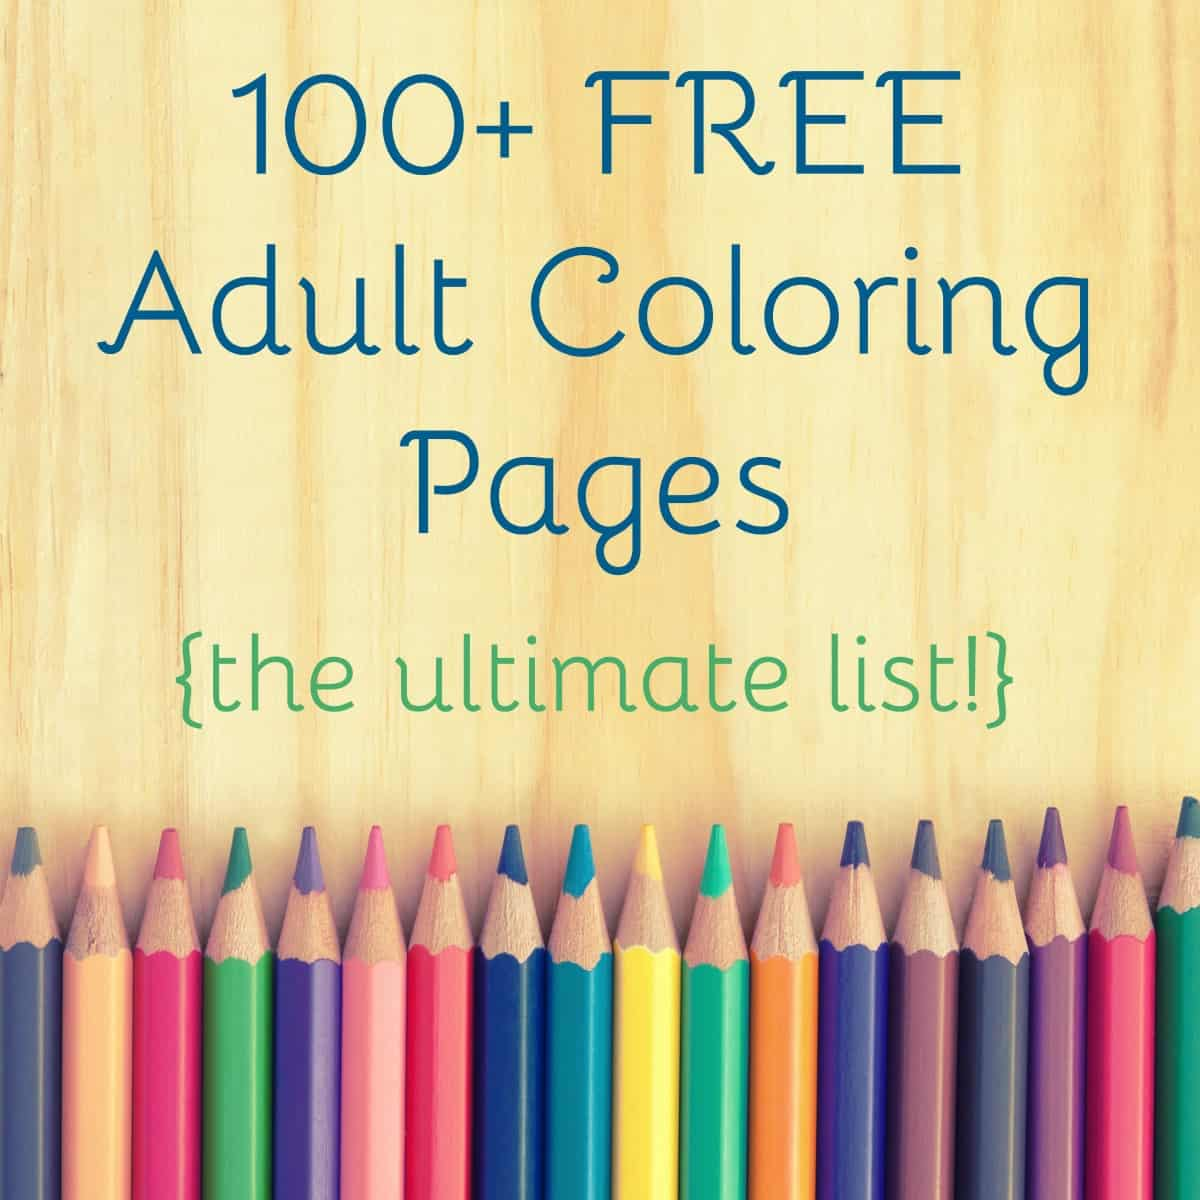 get links to over 100 free coloring pages youll love these favorites including - Free Colouring Images